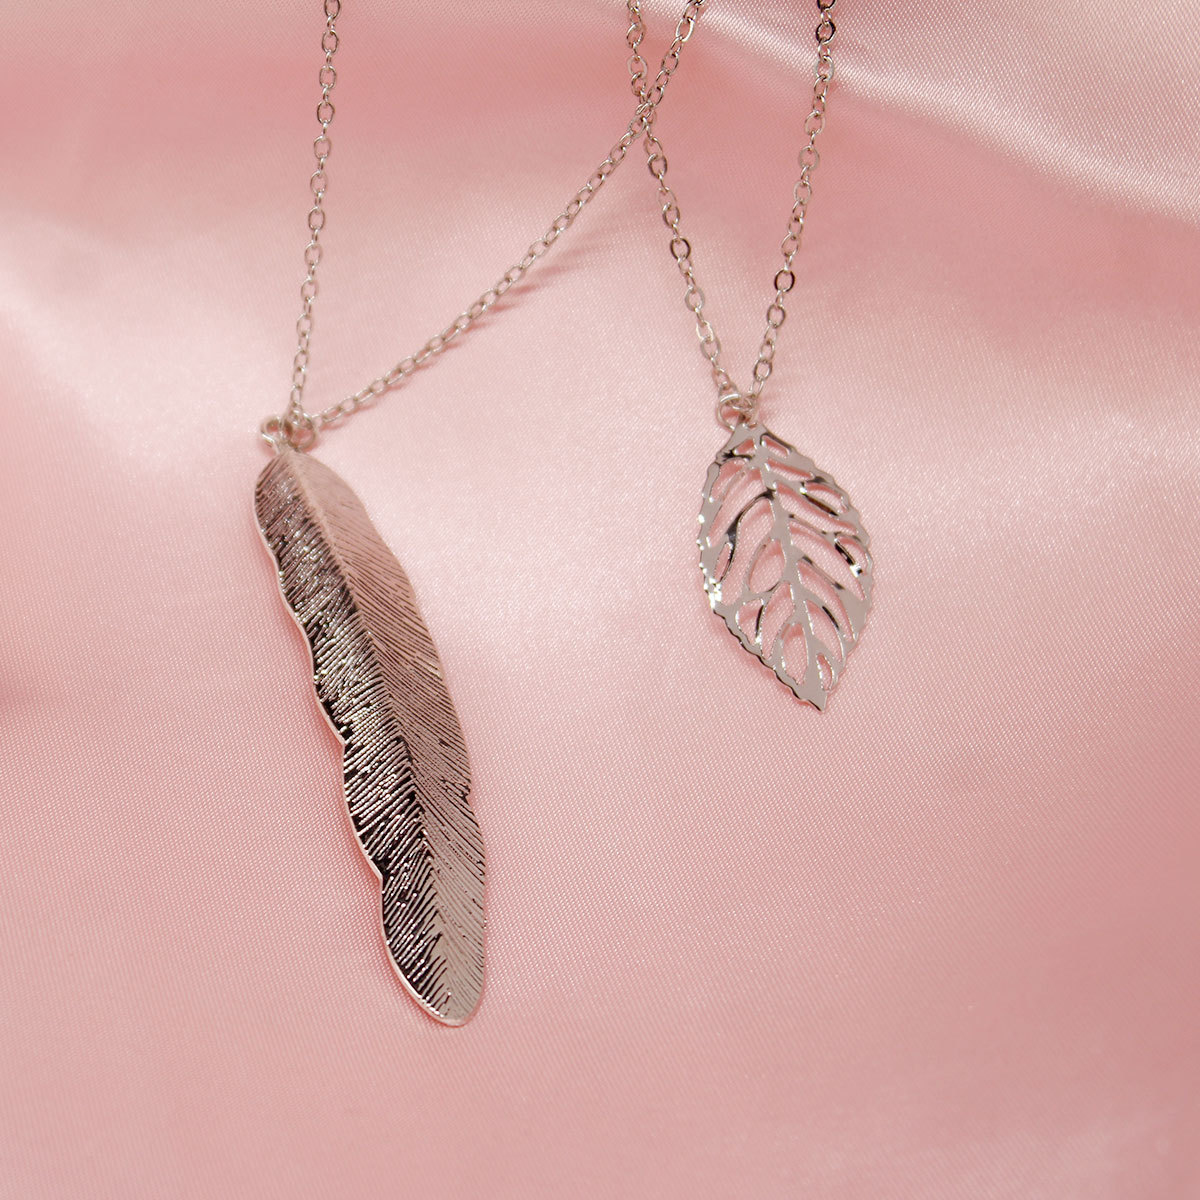 New Metal Leaf Feather Pendant Necklace Exaggerated Creative Double Layered Clavicle Chain Necklace XL631 in Pendant Necklaces from Jewelry Accessories